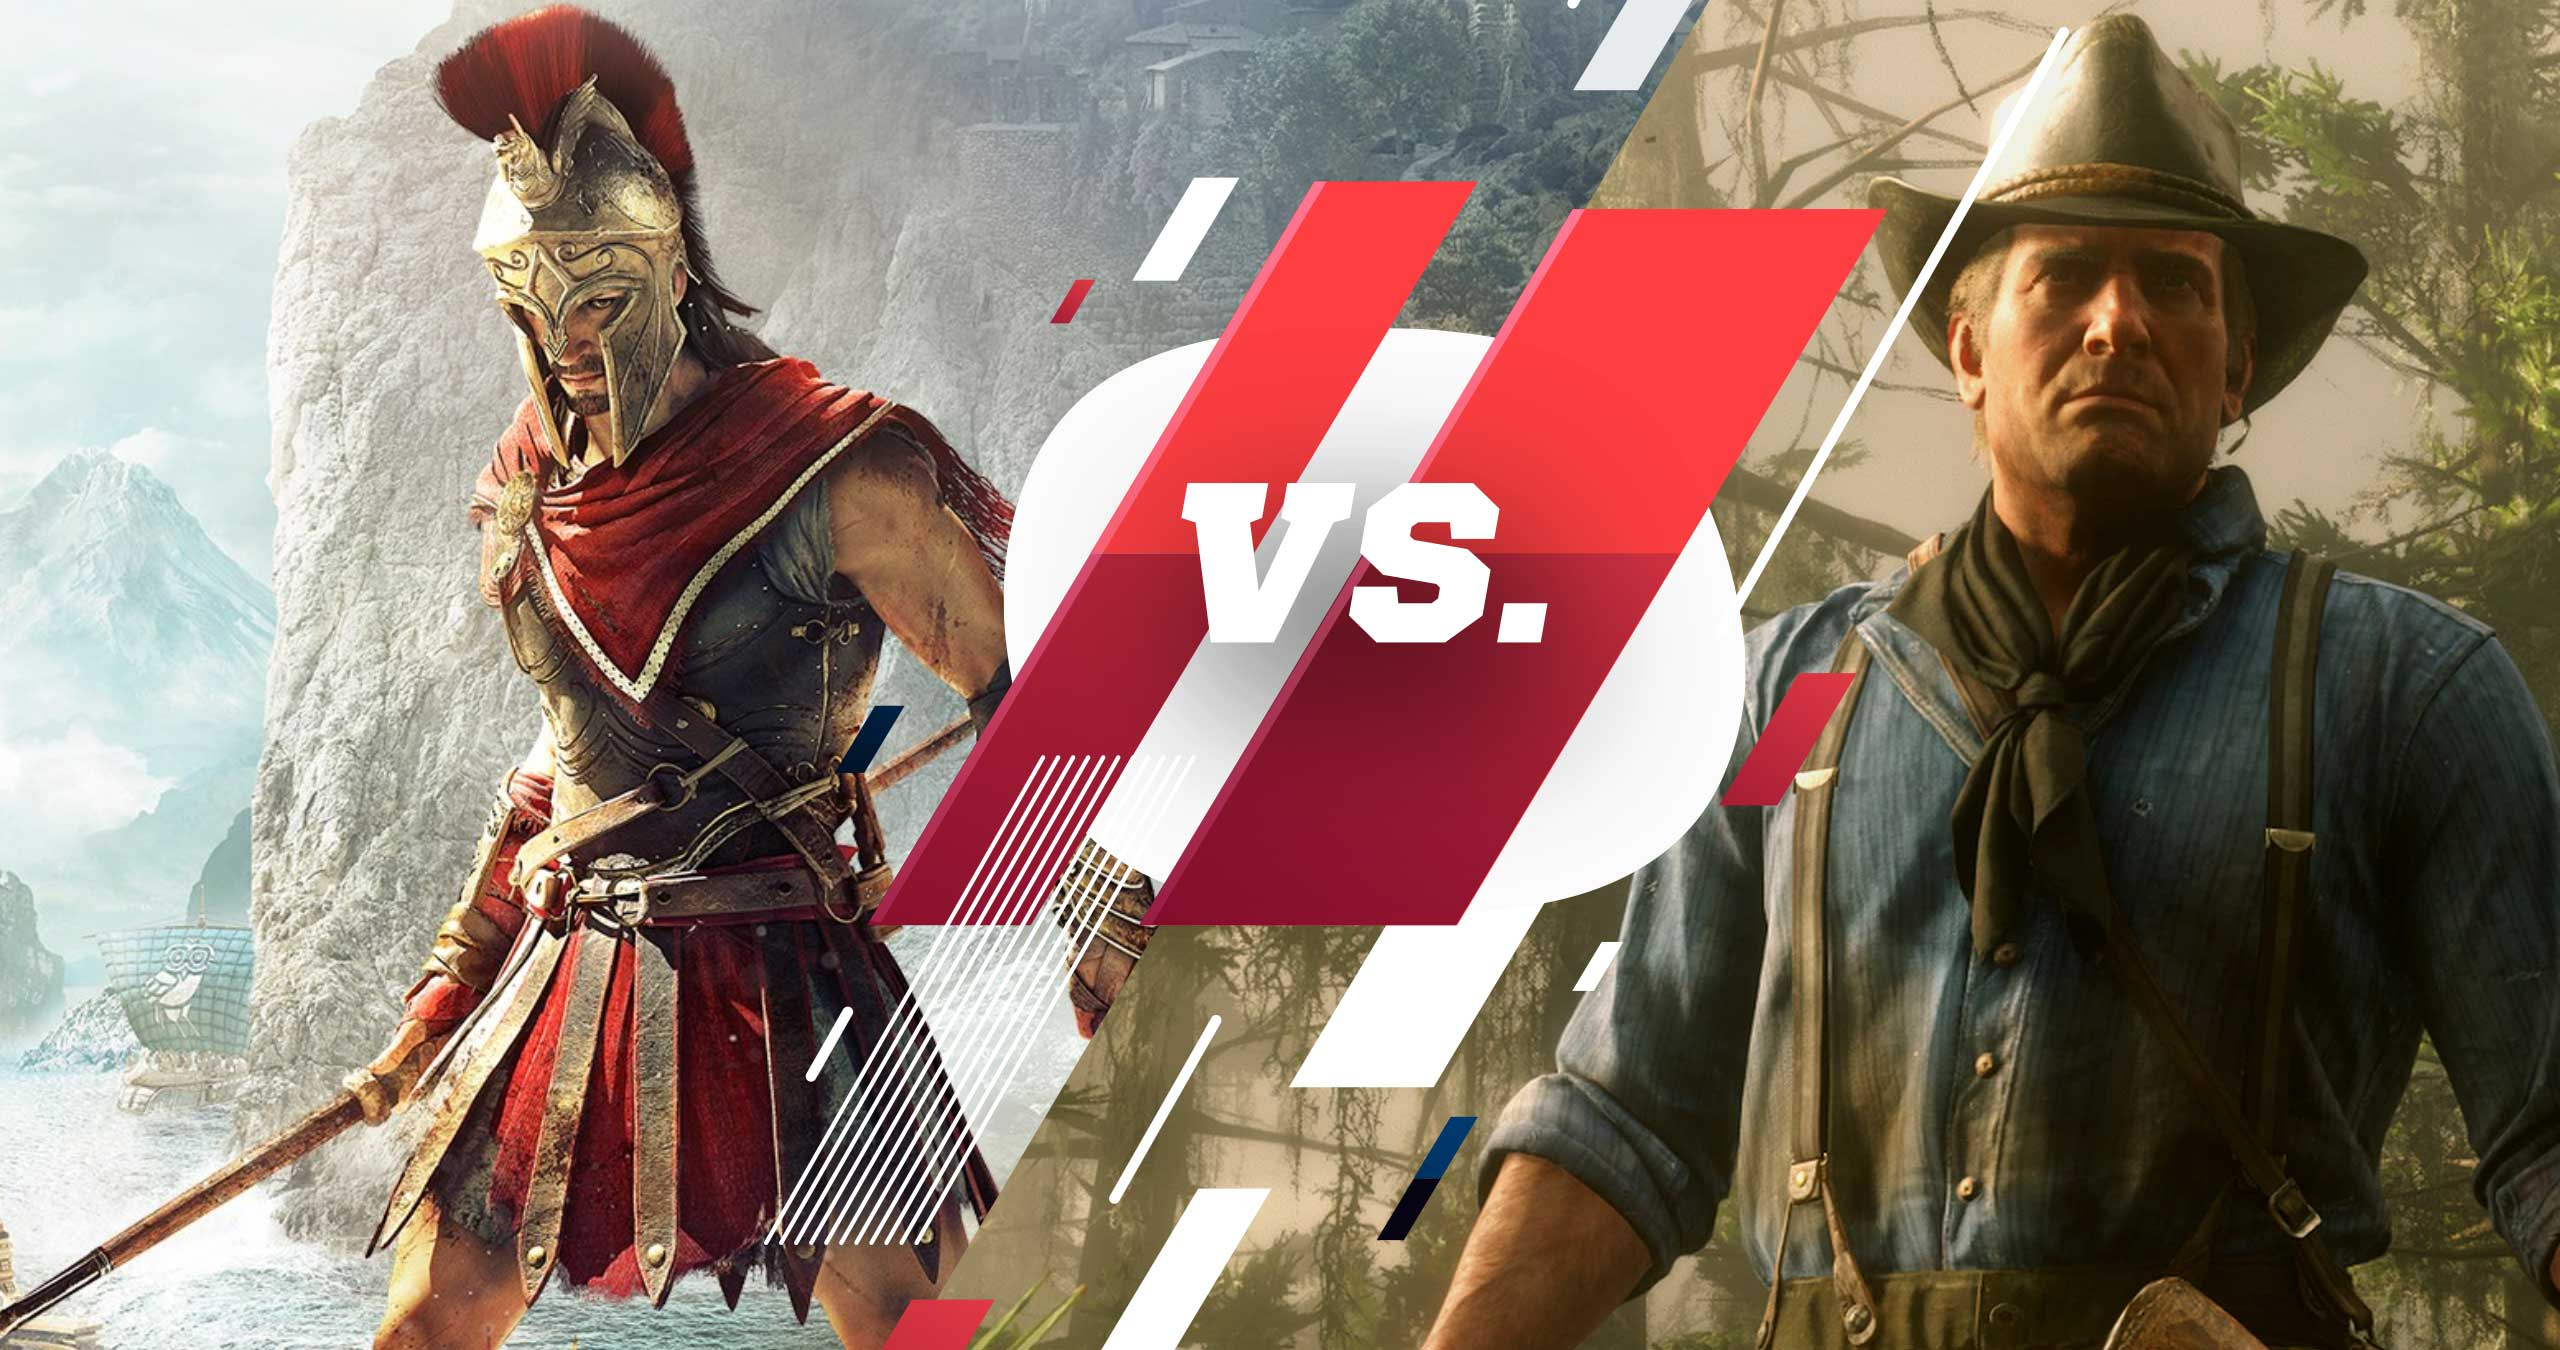 Assassin's Creed Odyssey' Vs. «Red Dead Redemption 2»: сравнение графики